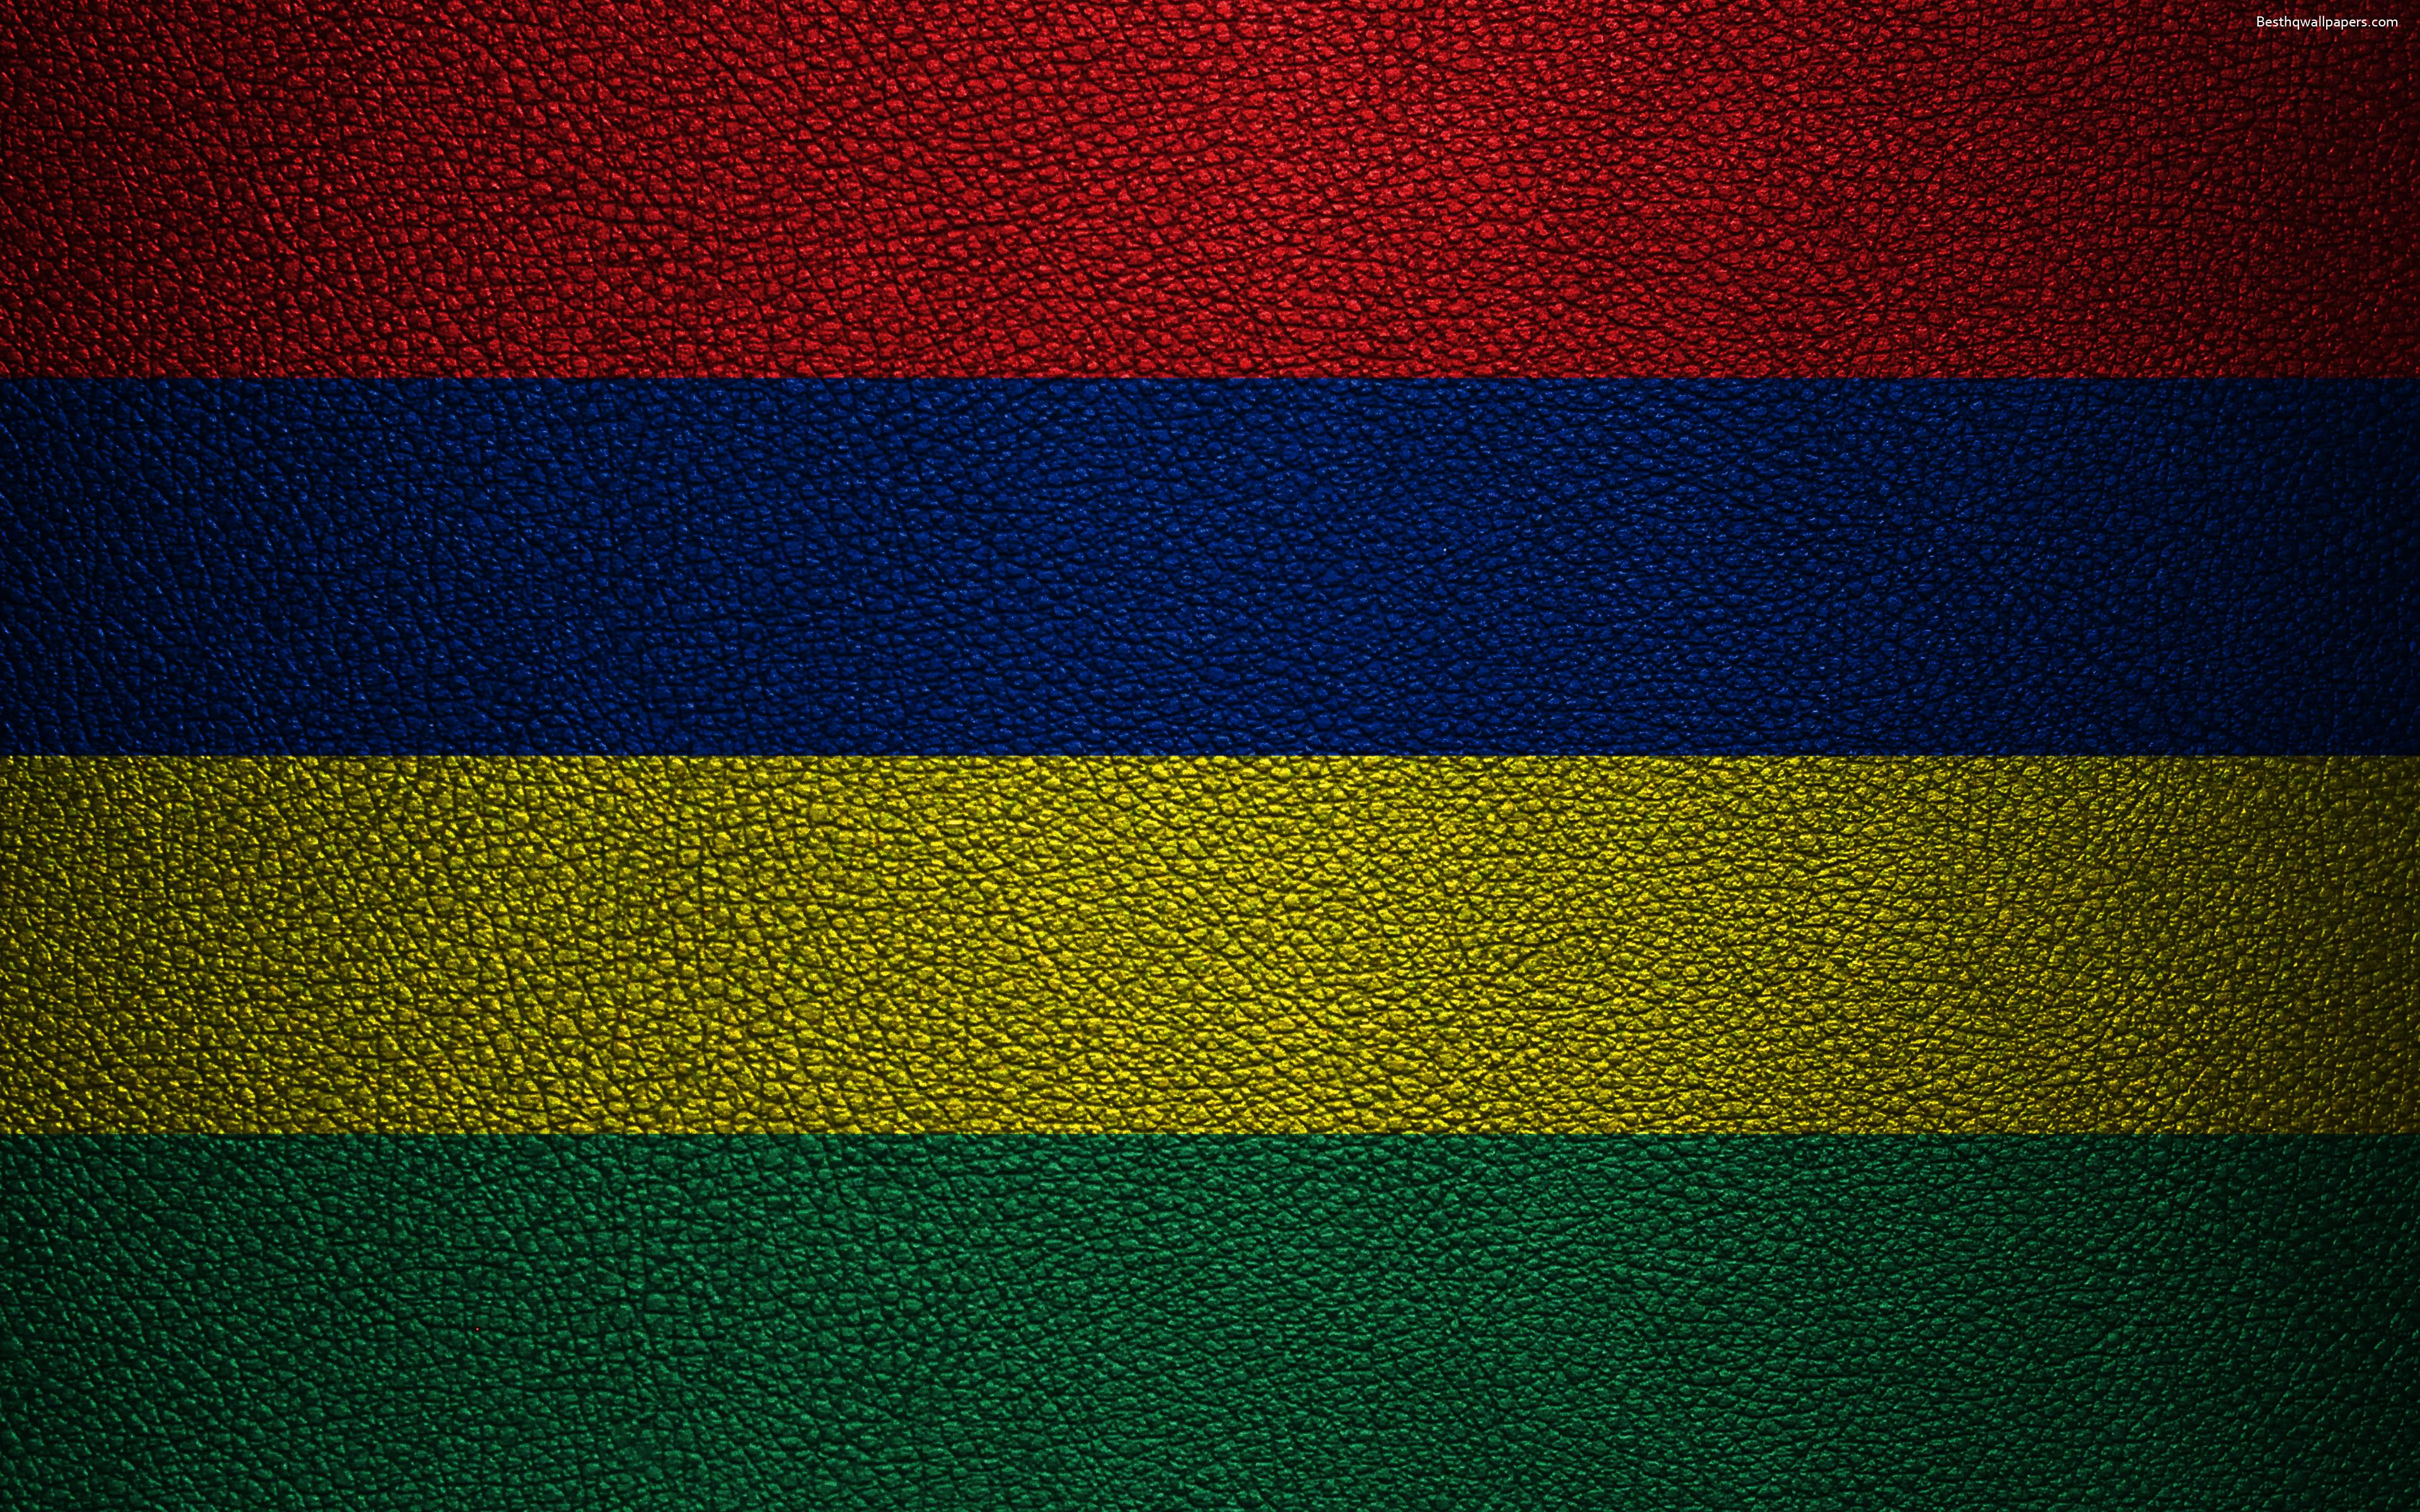 Download wallpapers Flag of Mauritius, 4k, leather texture, Africa ...